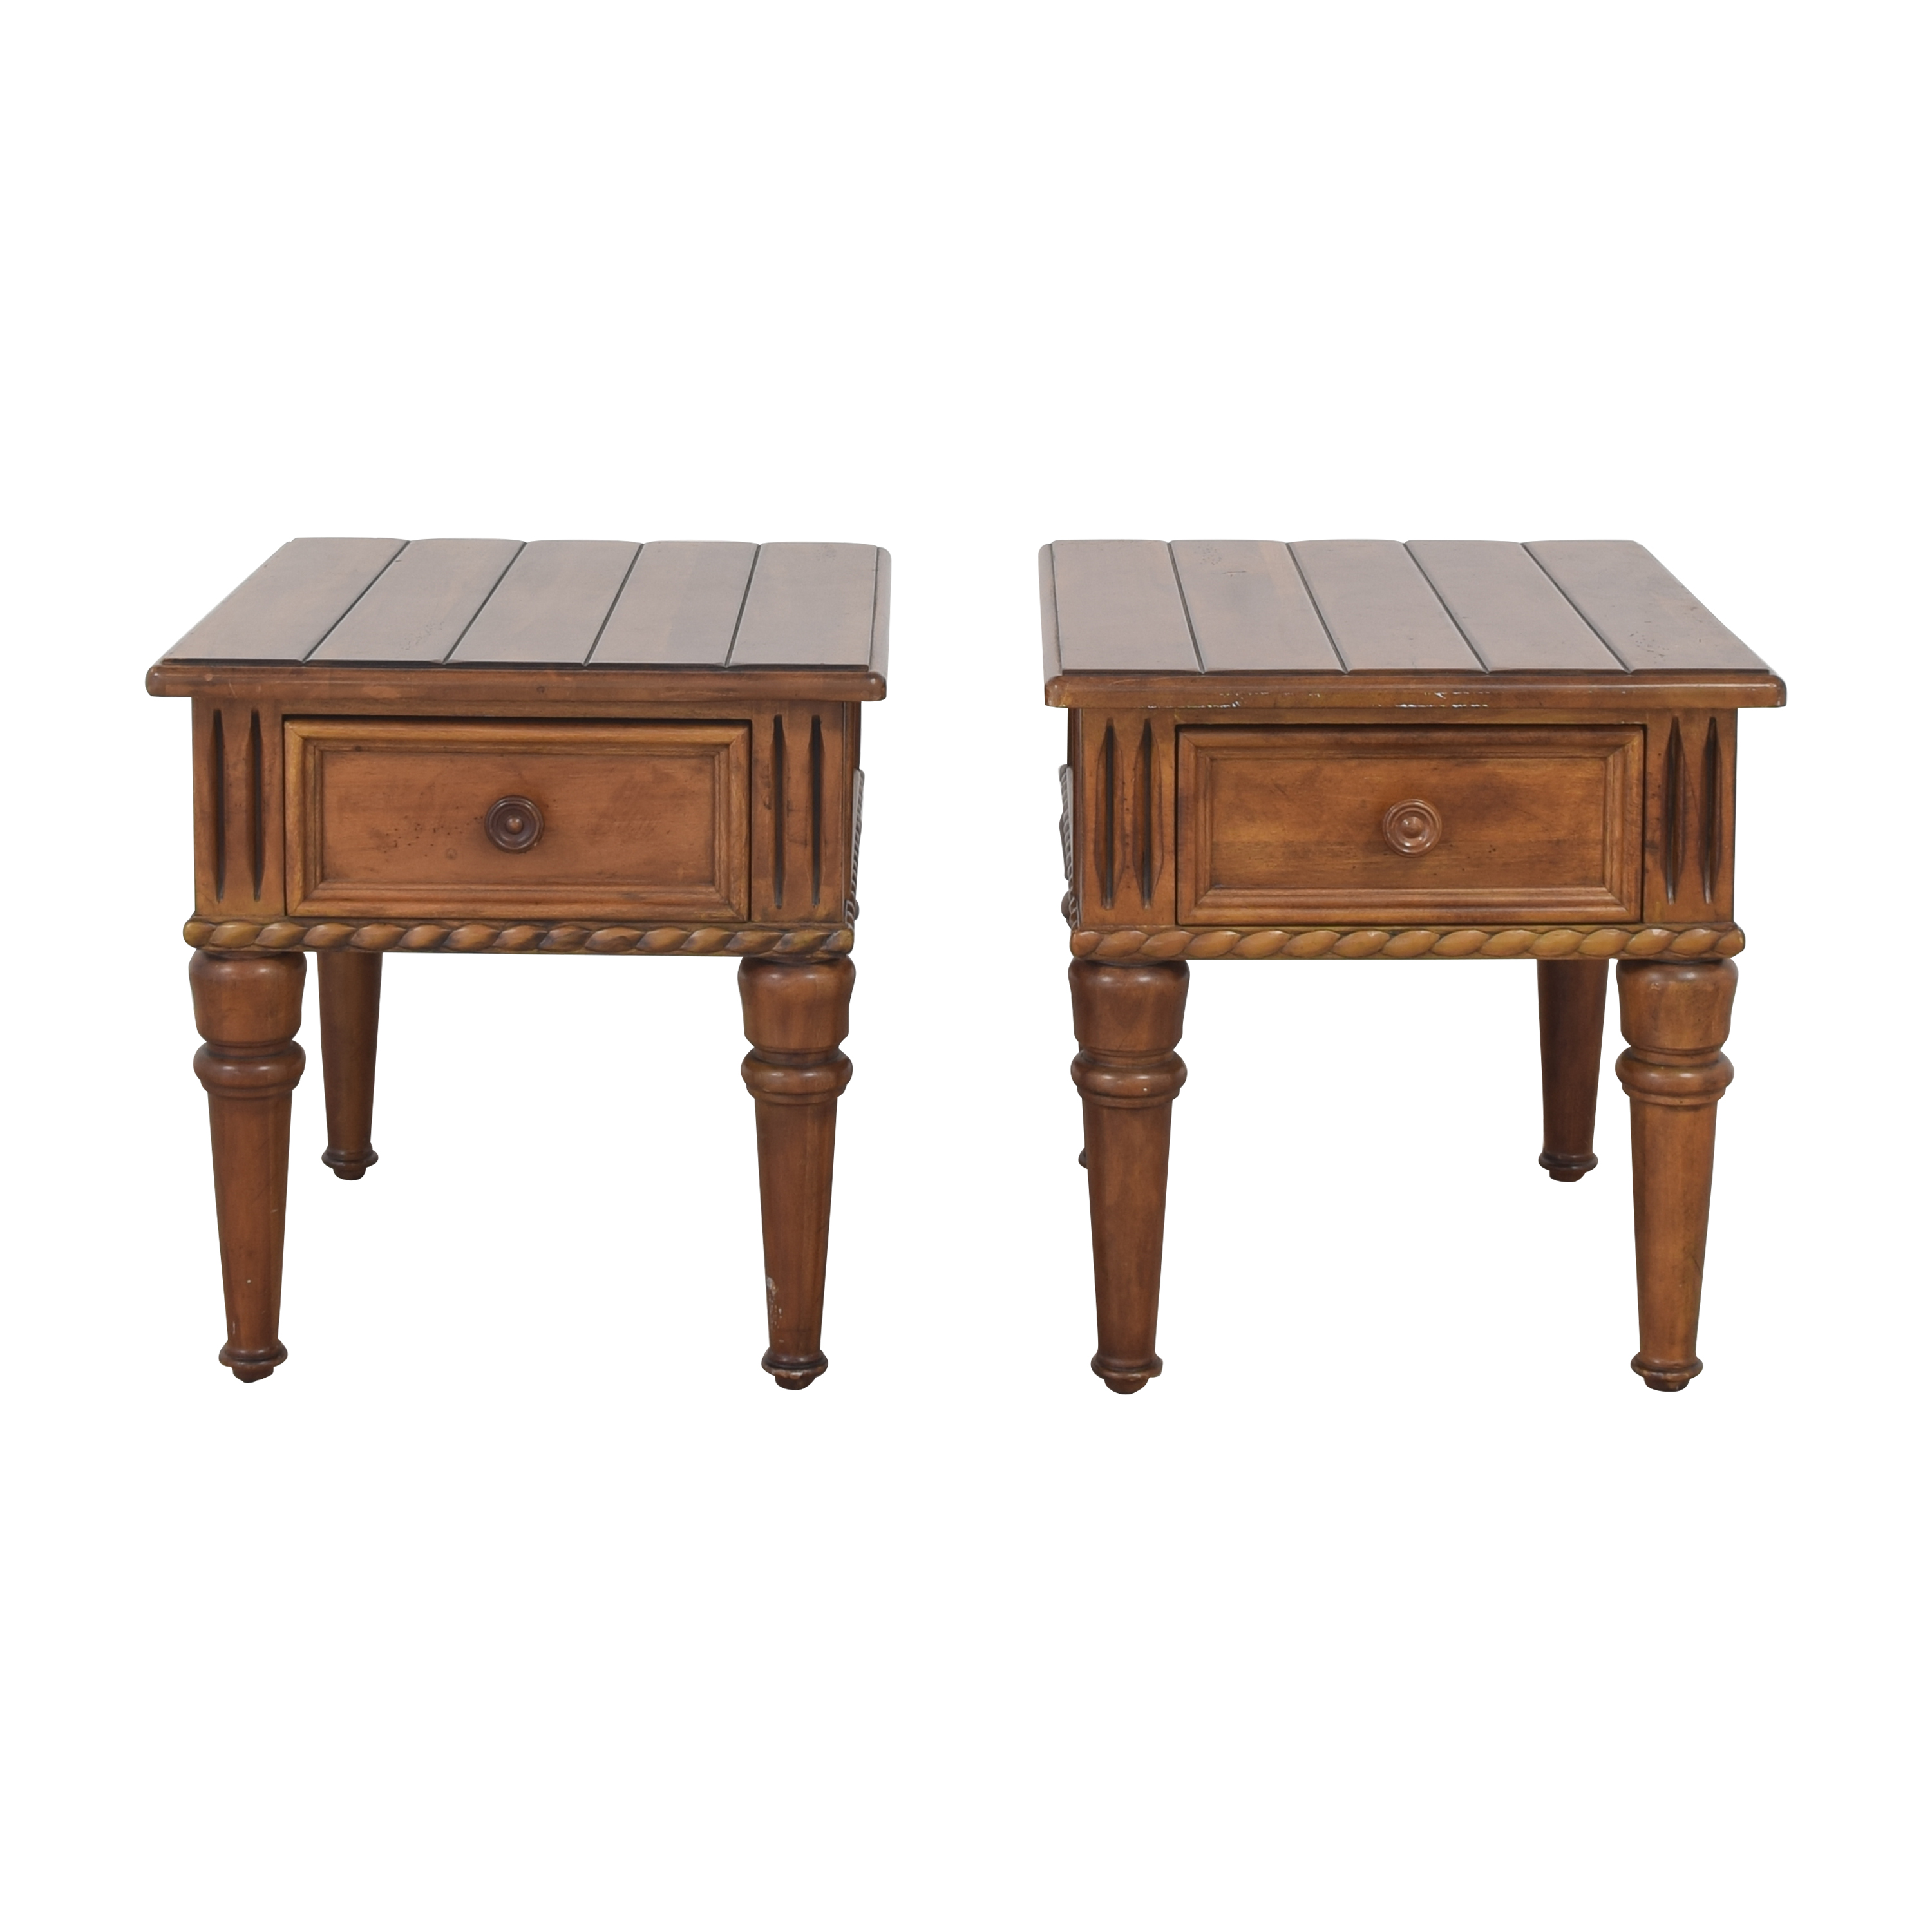 Thomasville Ernest Hemingway Collection Single Drawer Carved Wood End Tables sale